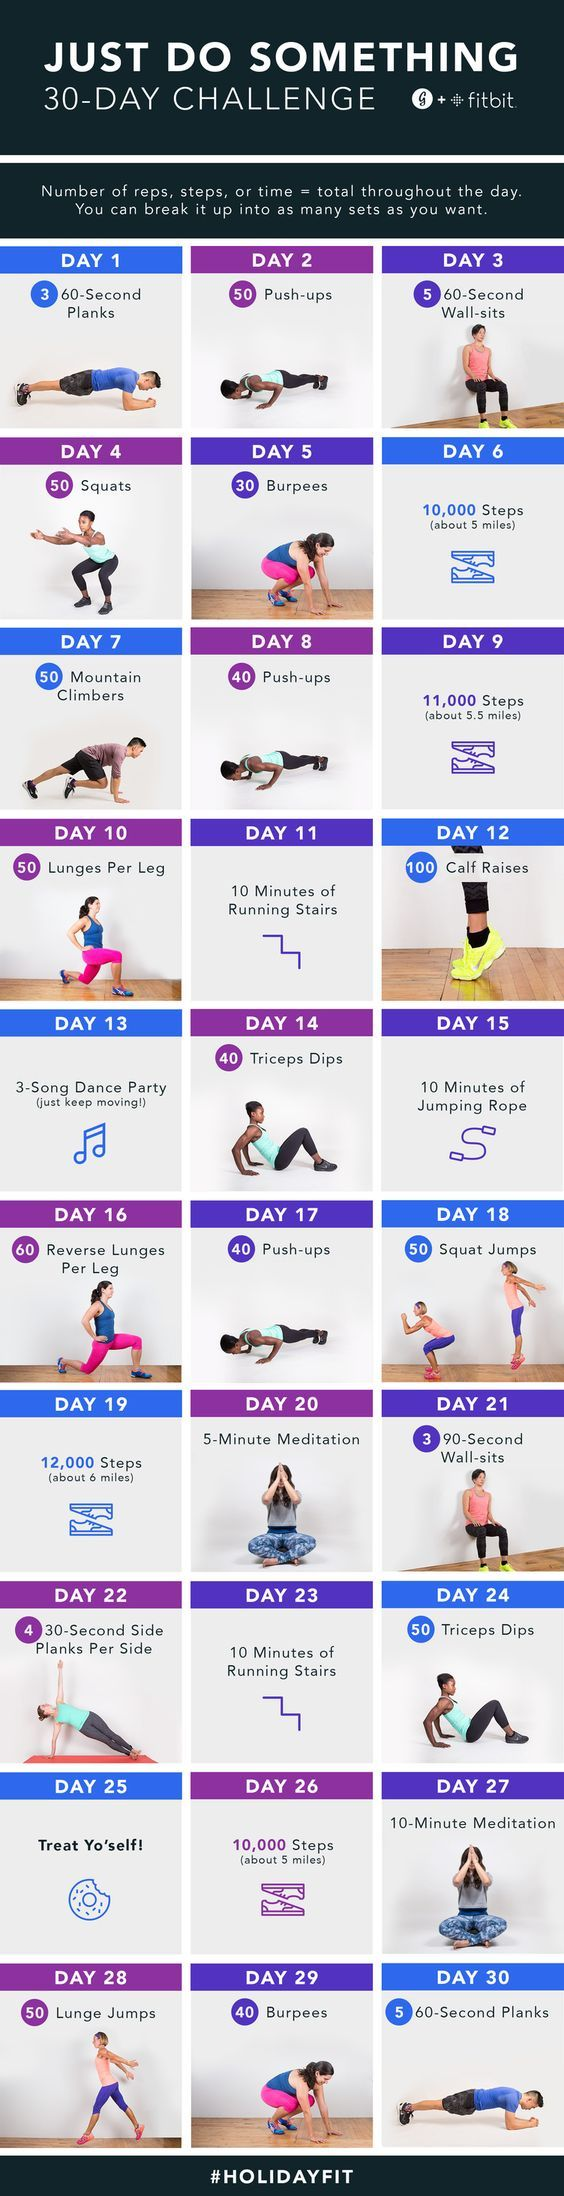 Greatist and Fitbit's 30-Day, Just-Do Something Challenge: